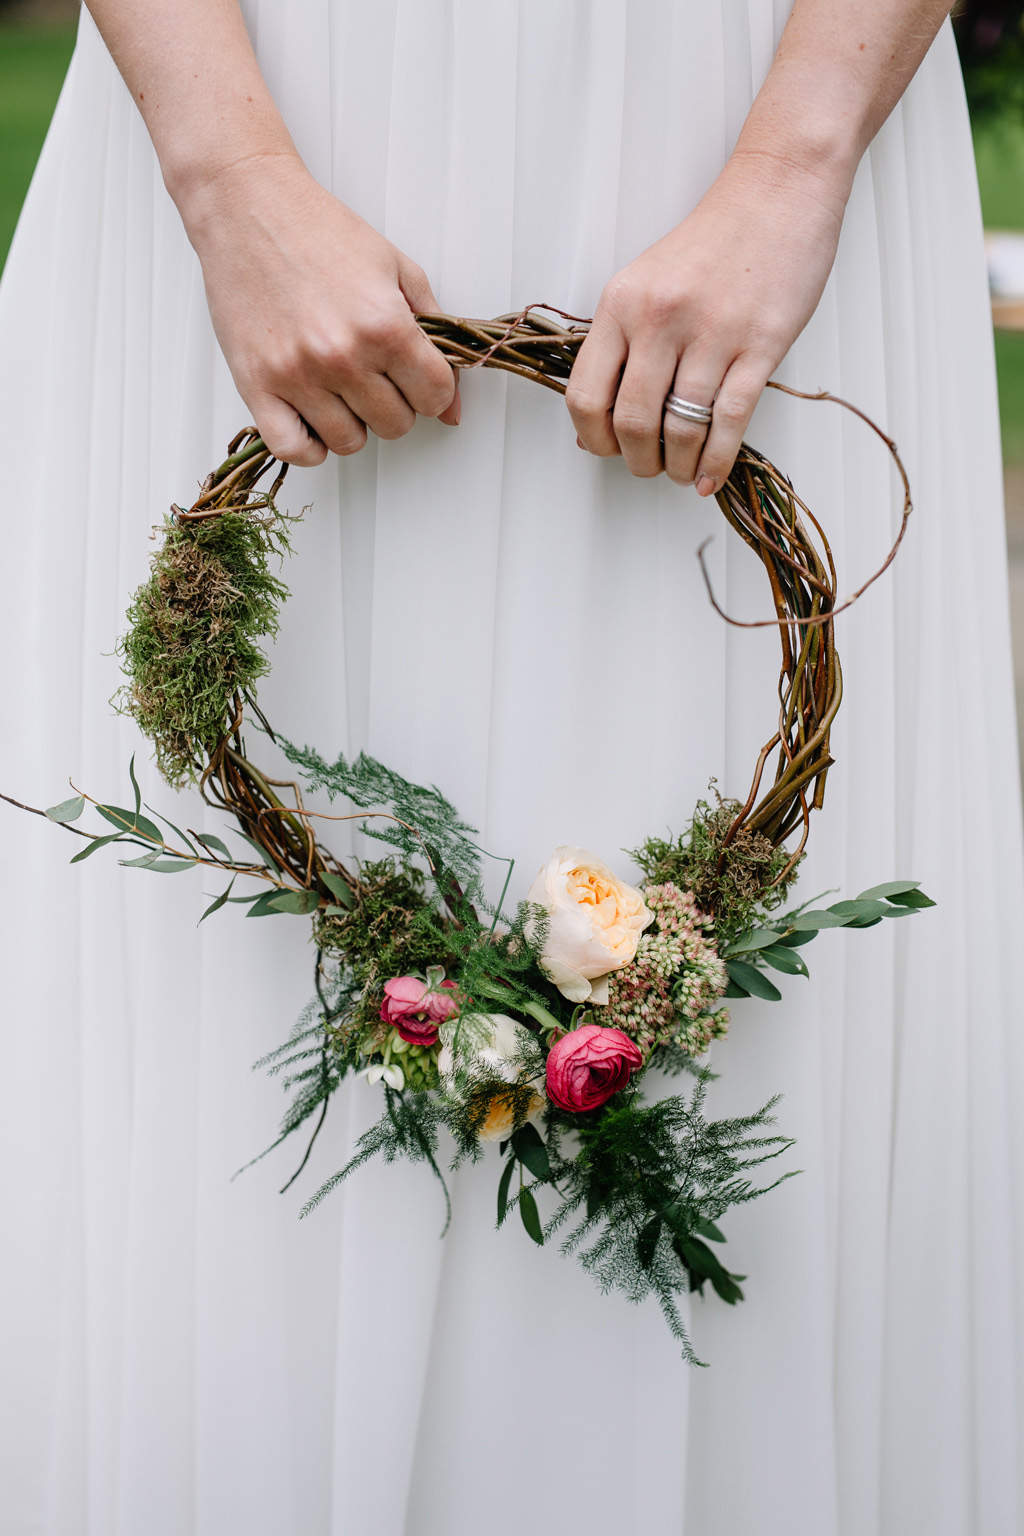 twisted willow bridal hoop in a boho style with moss, roses and peonies